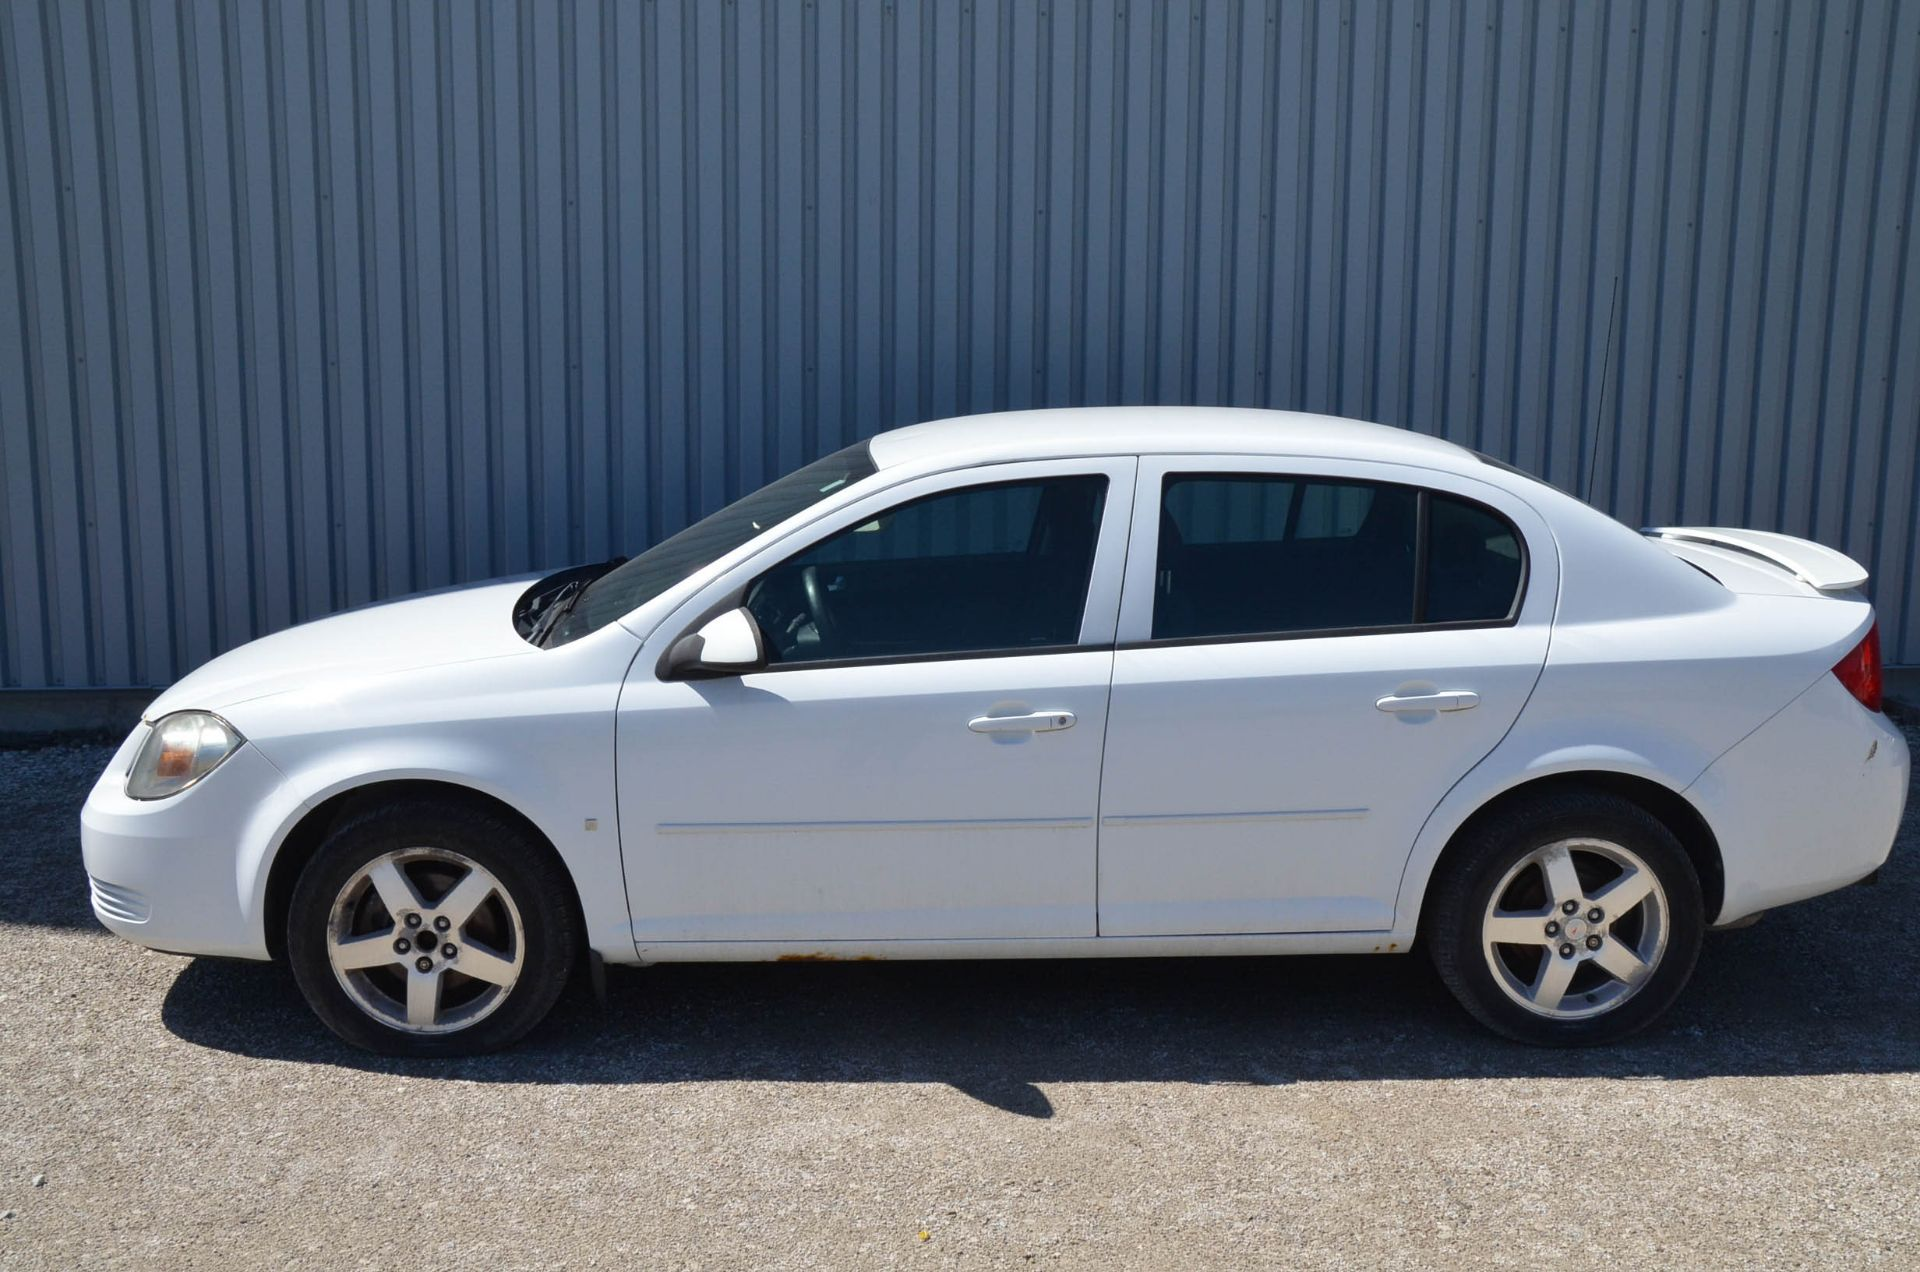 PONTIAC (2008) G5 4-DOOR SEDAN, AUTO, APPROX. 192,000 KM (RECORDED ON METER AT THE TIME OF LISTING), - Image 2 of 9